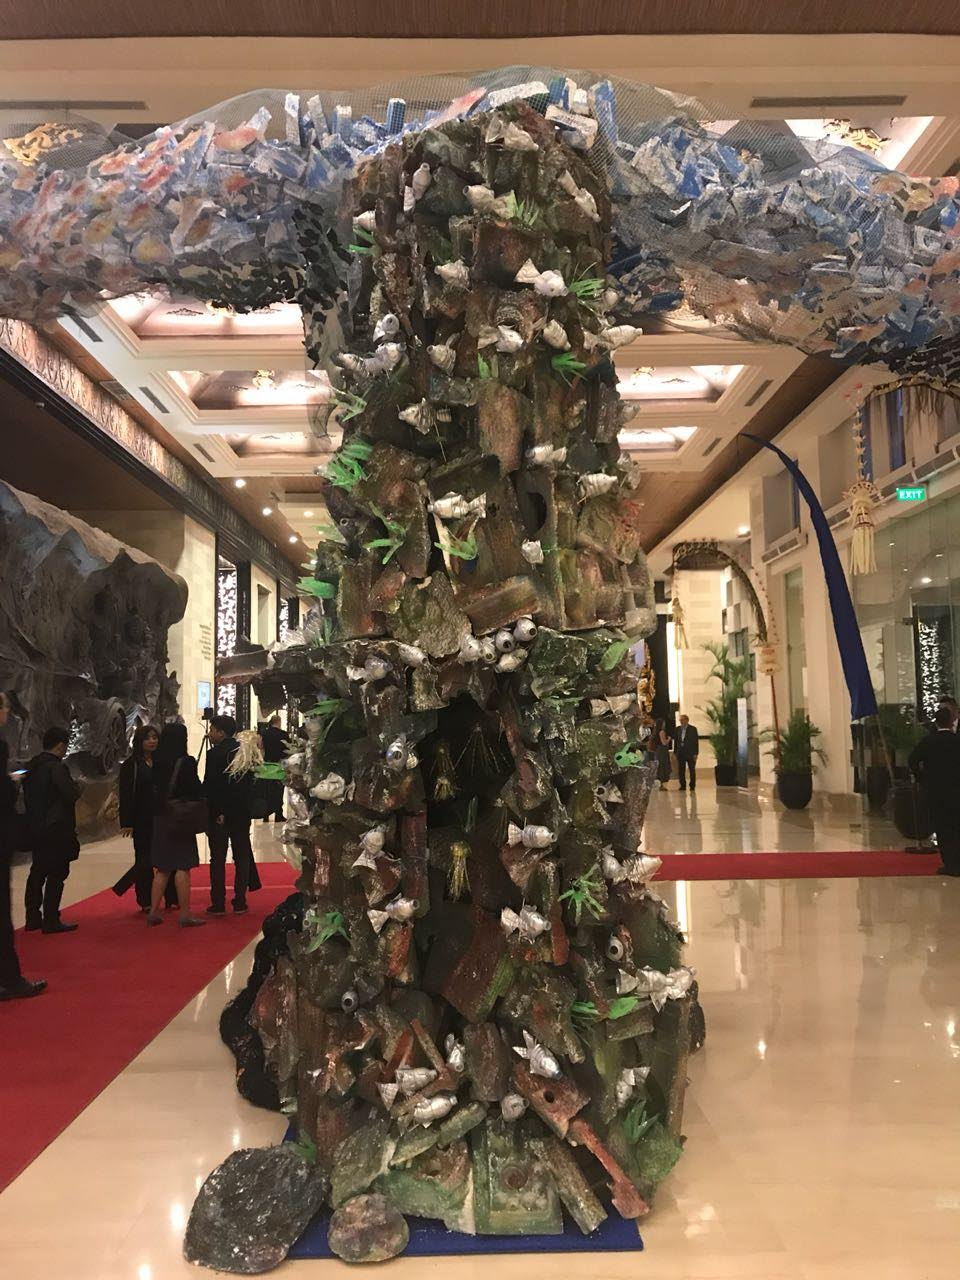 Sculptures crafted from plastic trash decorate the halls of Our Ocean 2018.